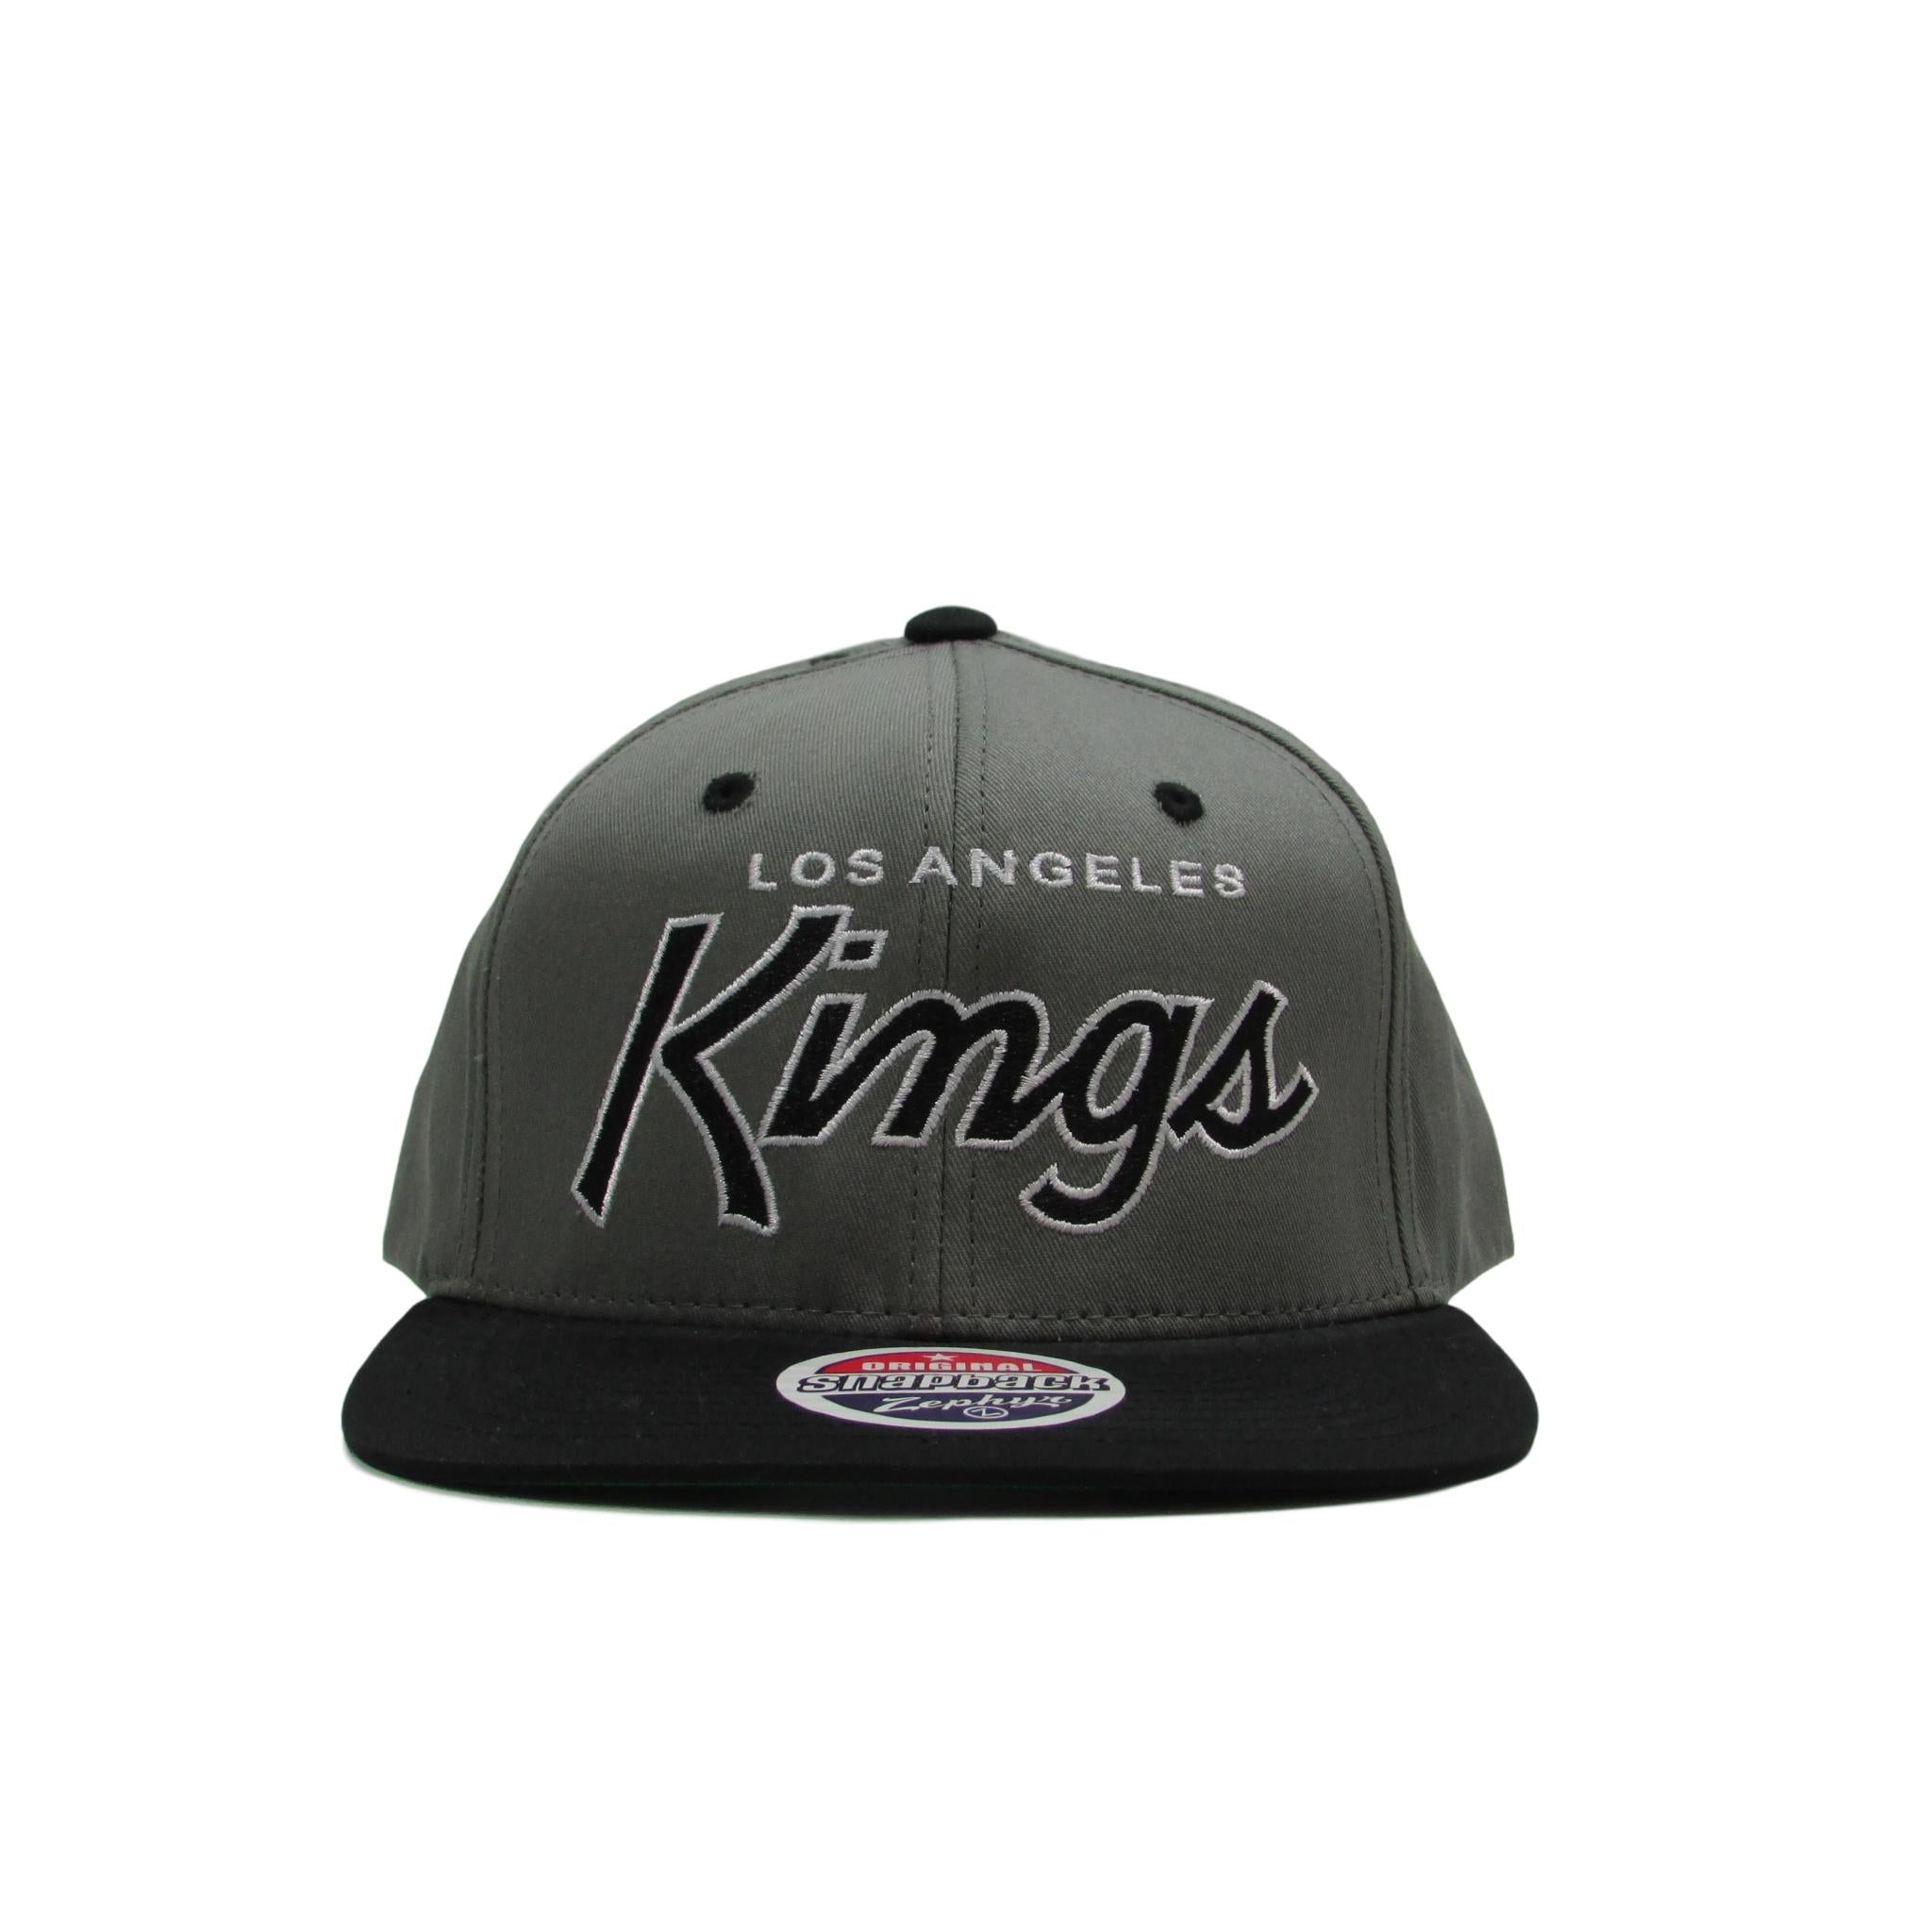 Los Angeles LA Kings Cursive Font Hockey Snapback Hat Black Brim Zephyr Hats